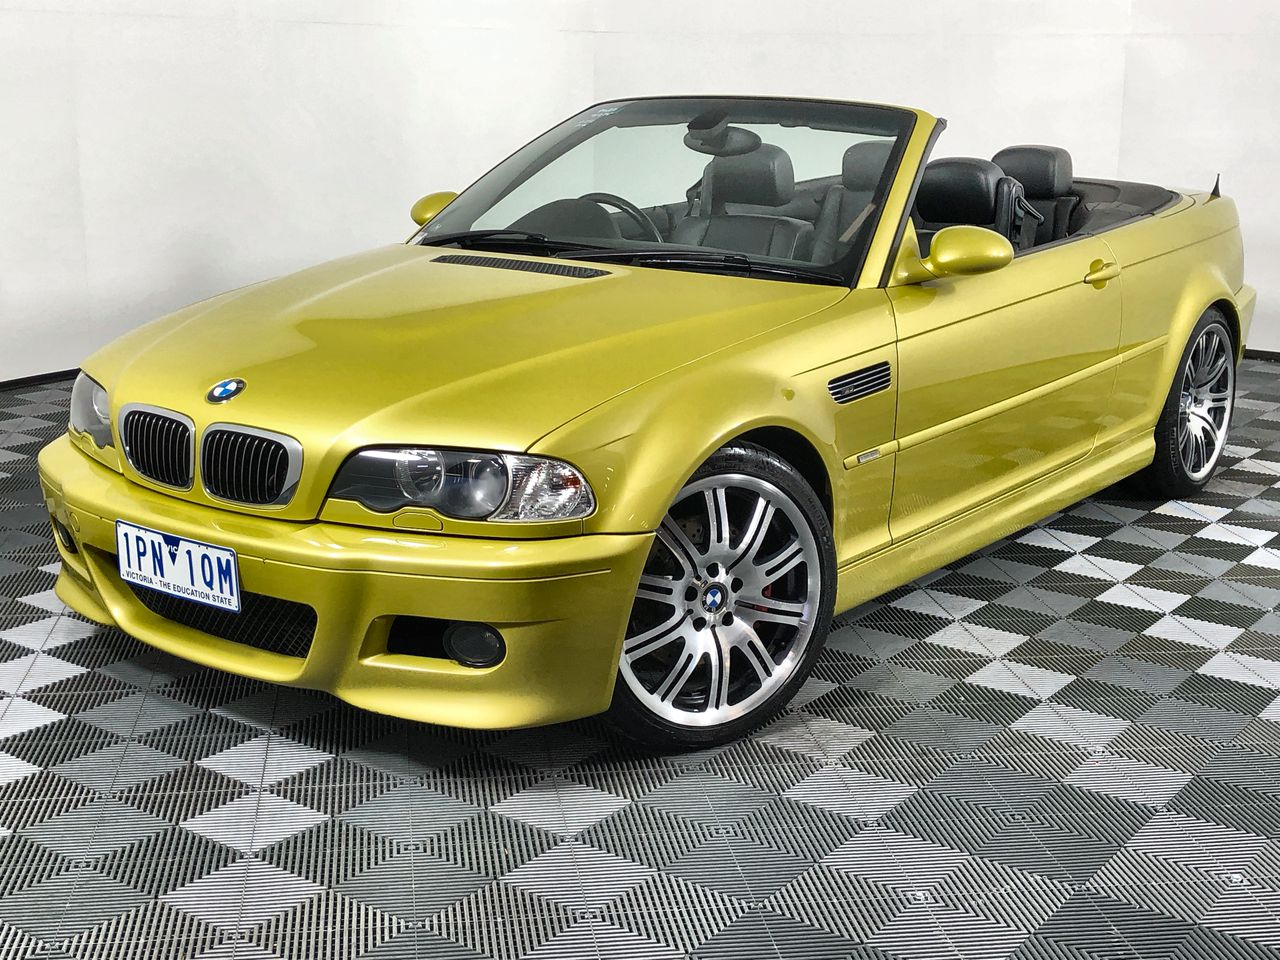 2004 BMW M3 E46 Manual Convertible